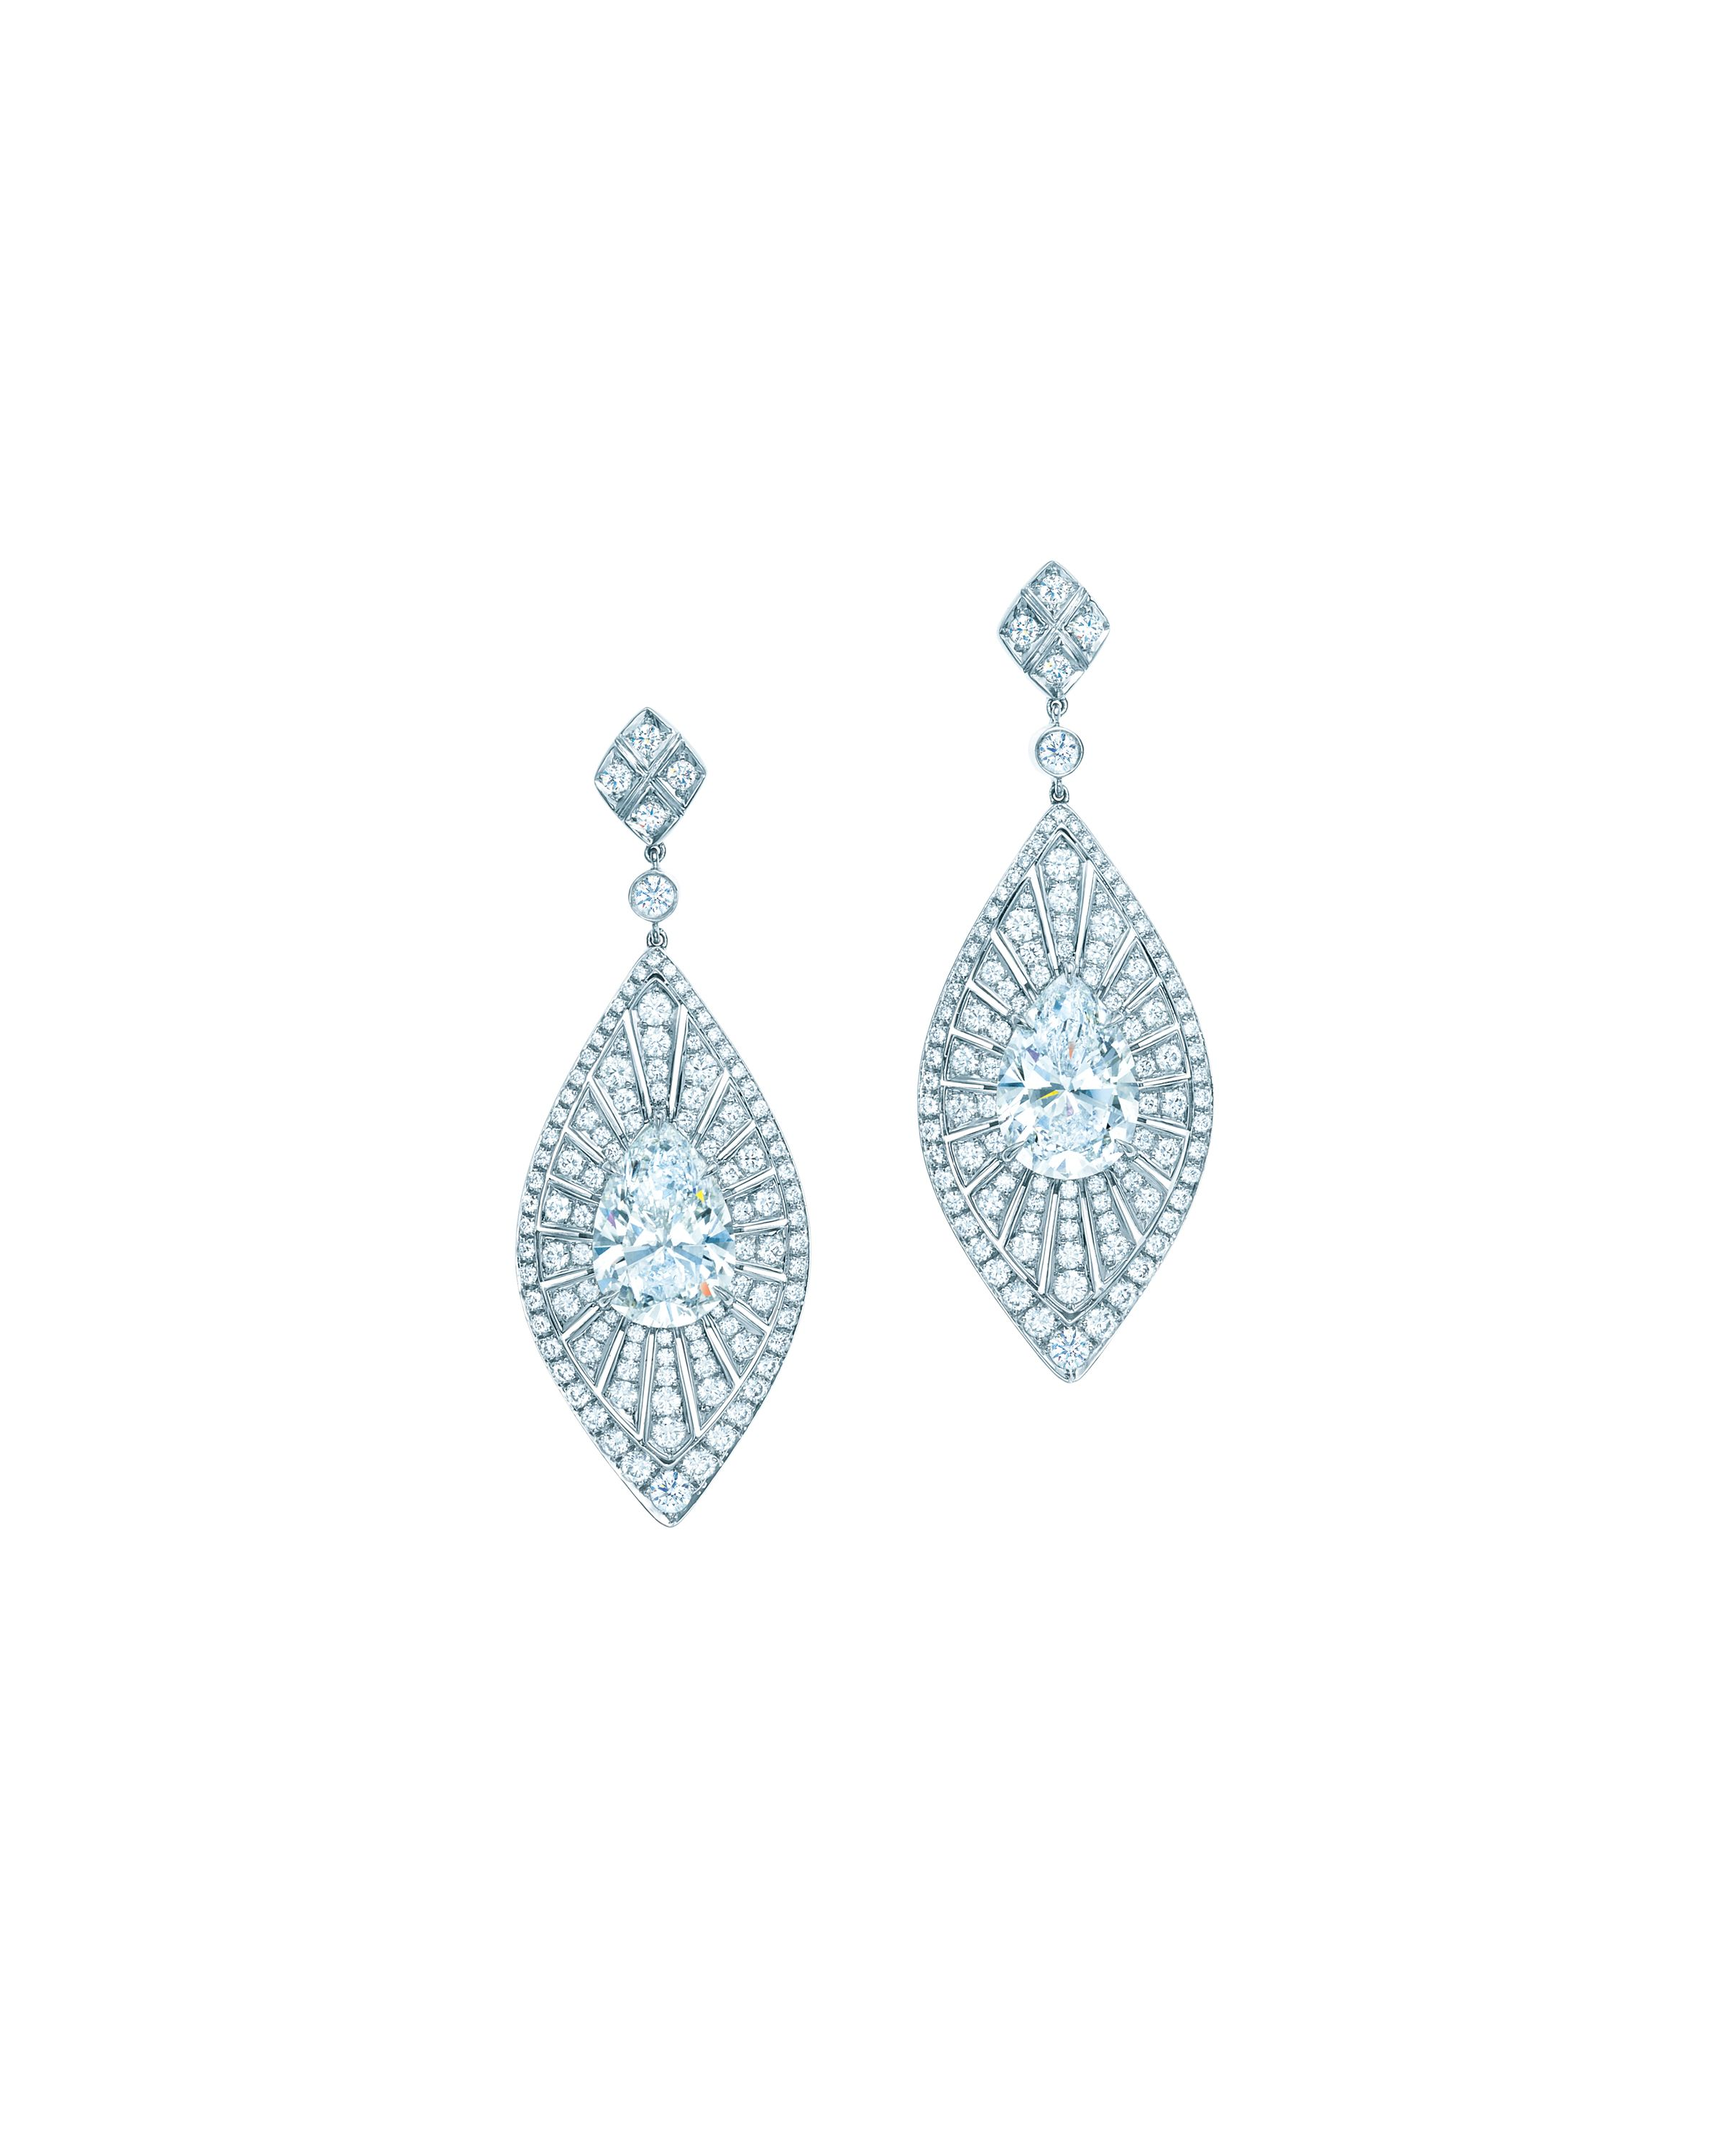 Tiffany earrings with pear-shaped diamonds in platinum